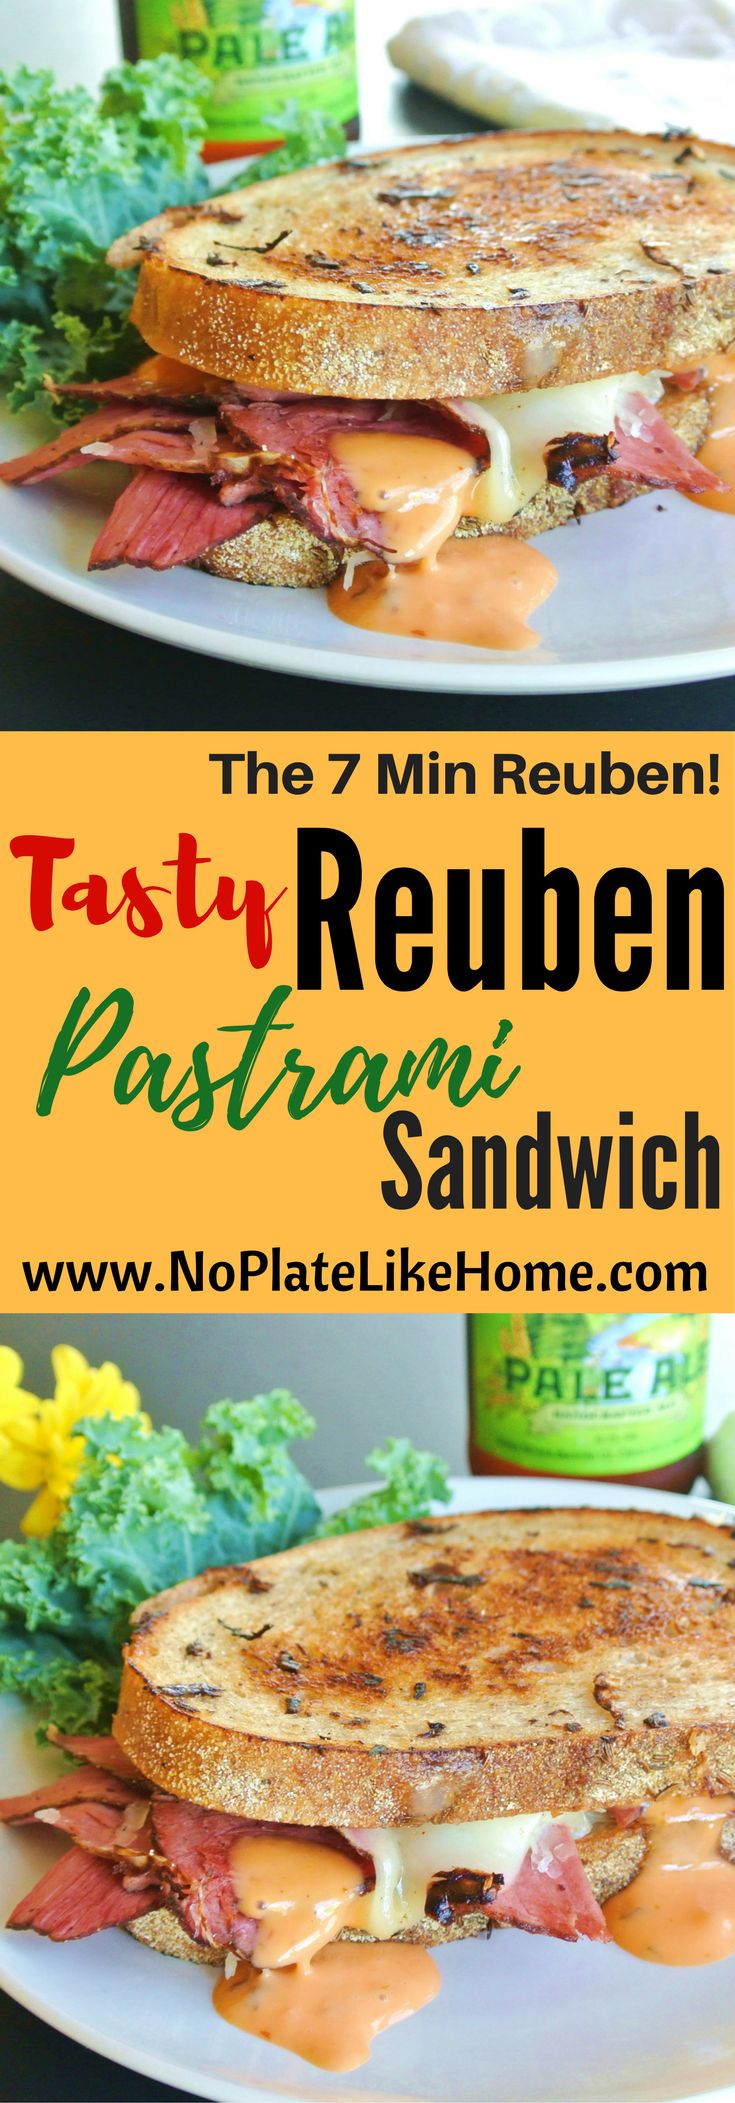 In 7 min, you can make a tasty classic grilled Reuben Pastrami with sauerkraut, Swiss cheese, Rye bread and homemade dressing This recipe is fast and easy! Pin for dinner!